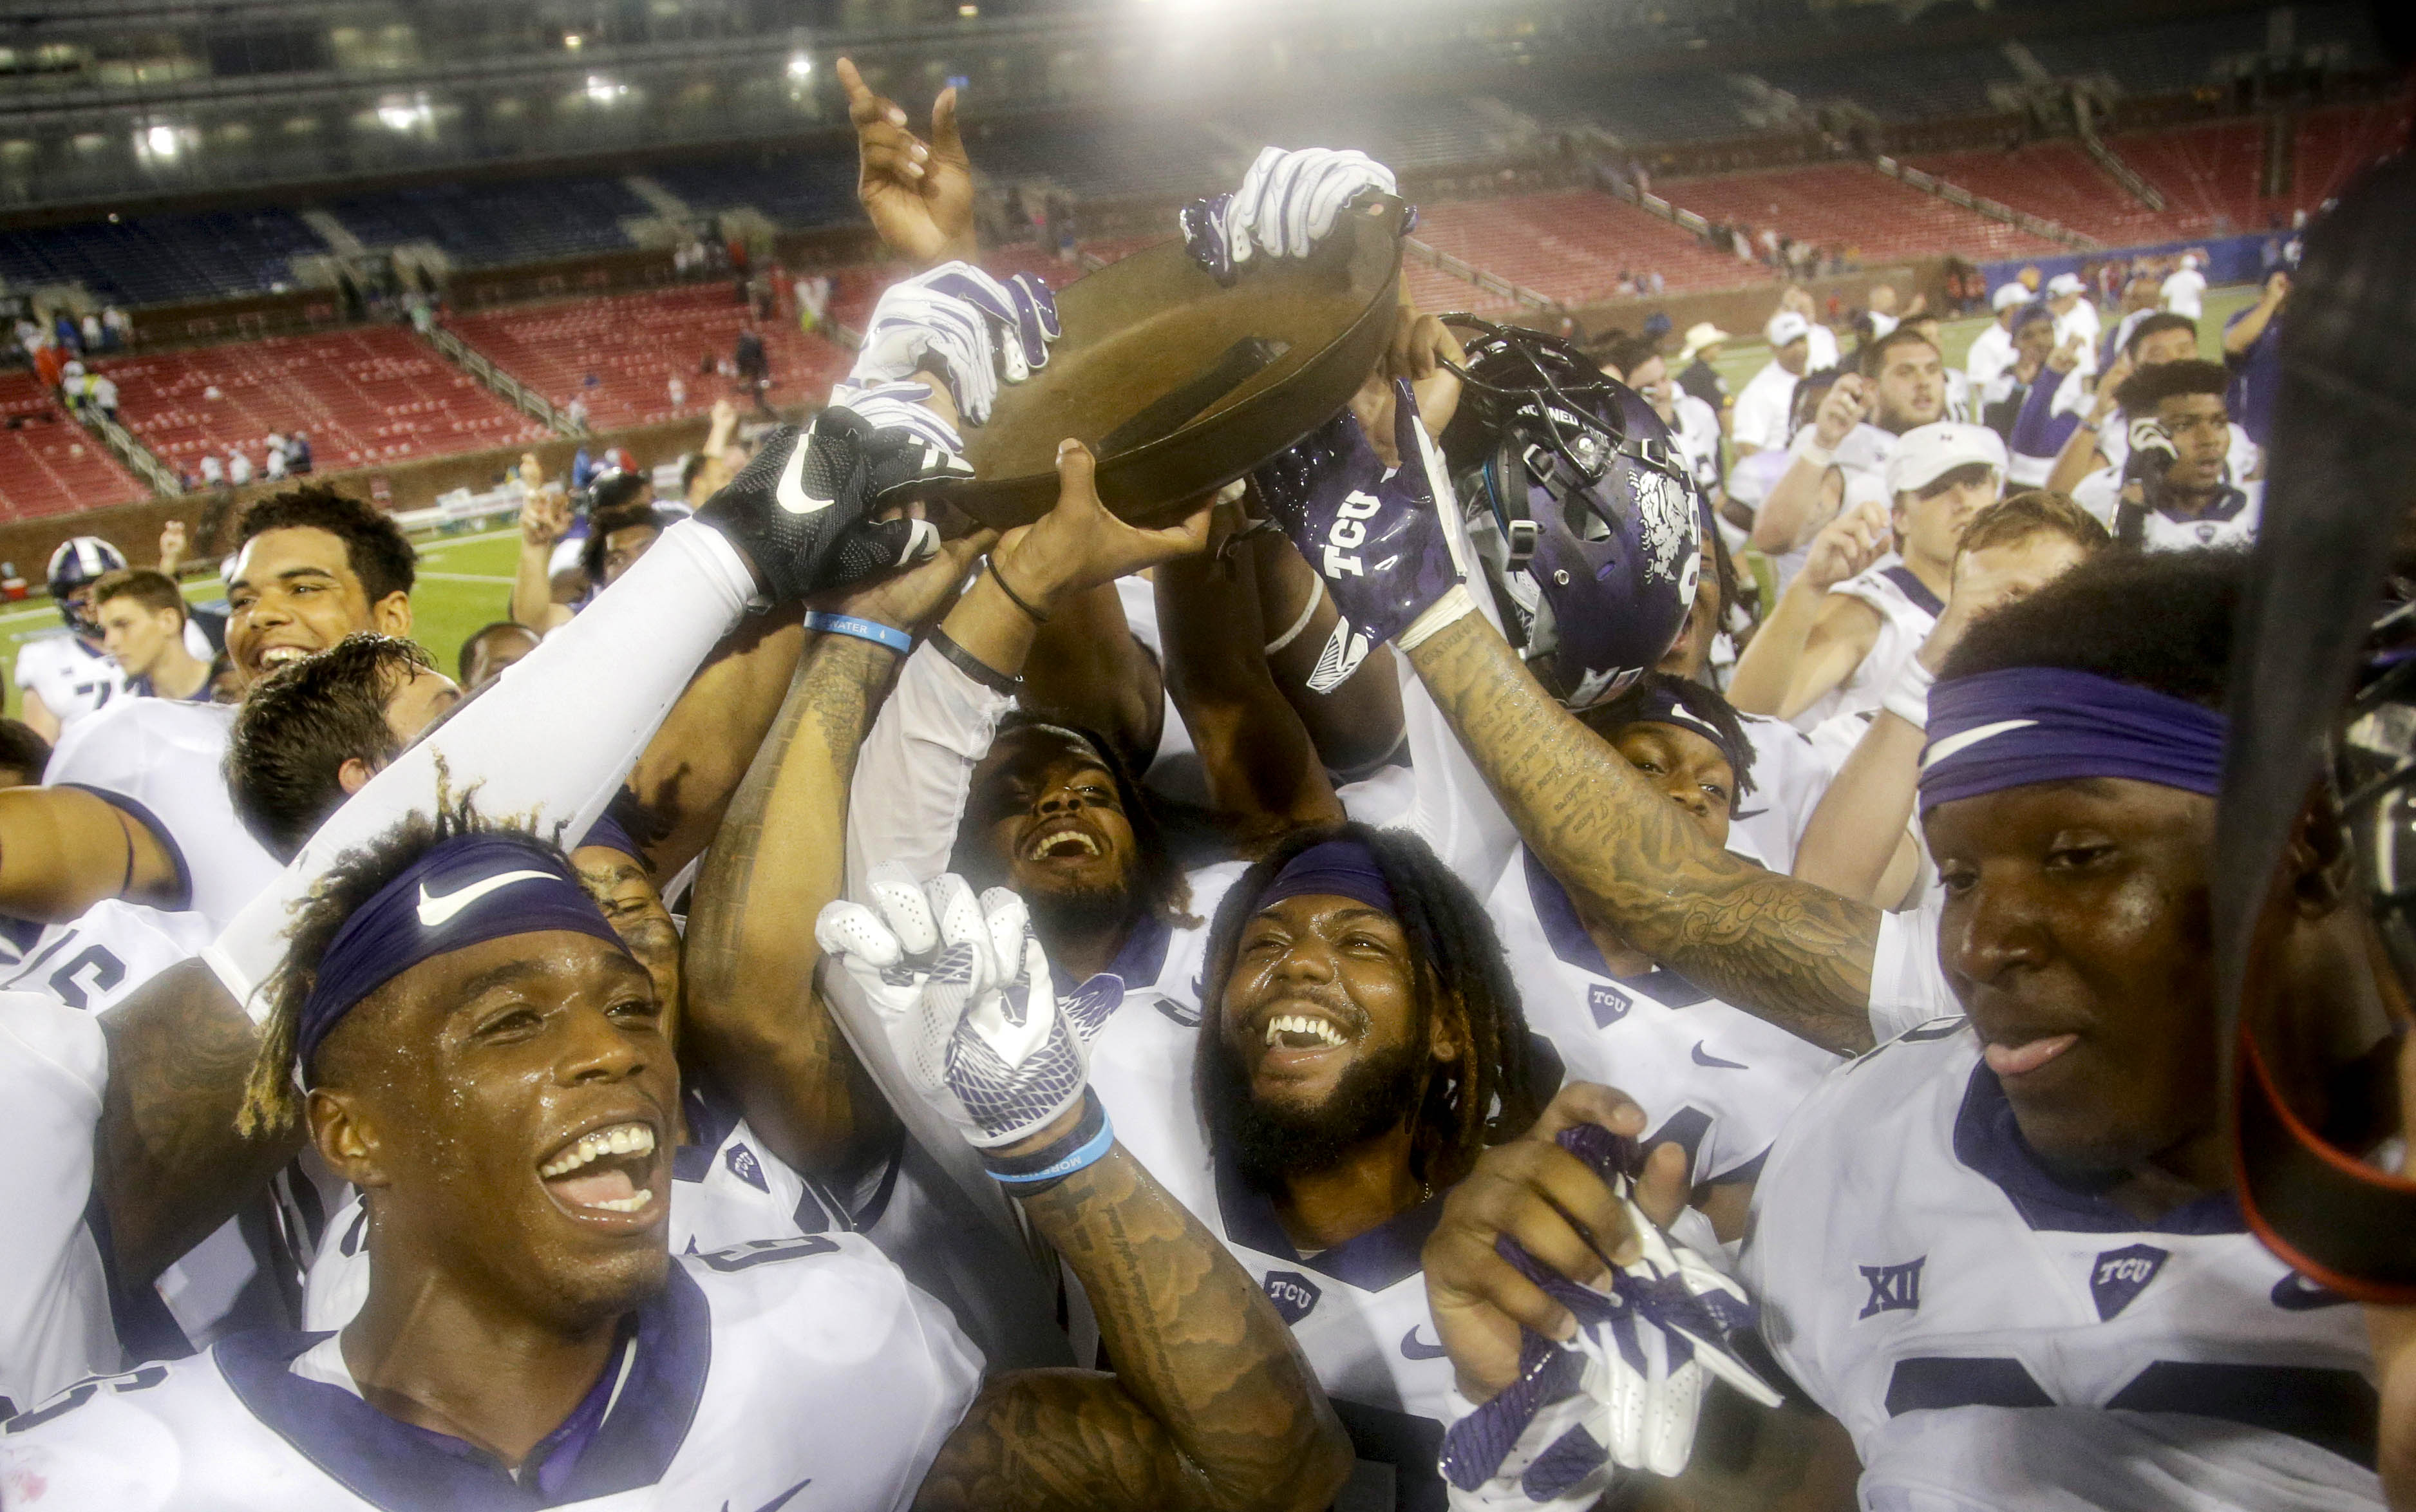 Sep 7, 2018; Dallas, TX, USA; TCU Horned Frogs players hold up the Iron Skillet after the game against the Southern Methodist Mustangs at Gerald J. Ford Stadium. Mandatory Credit: Tim Heitman-USA TODAY Sports